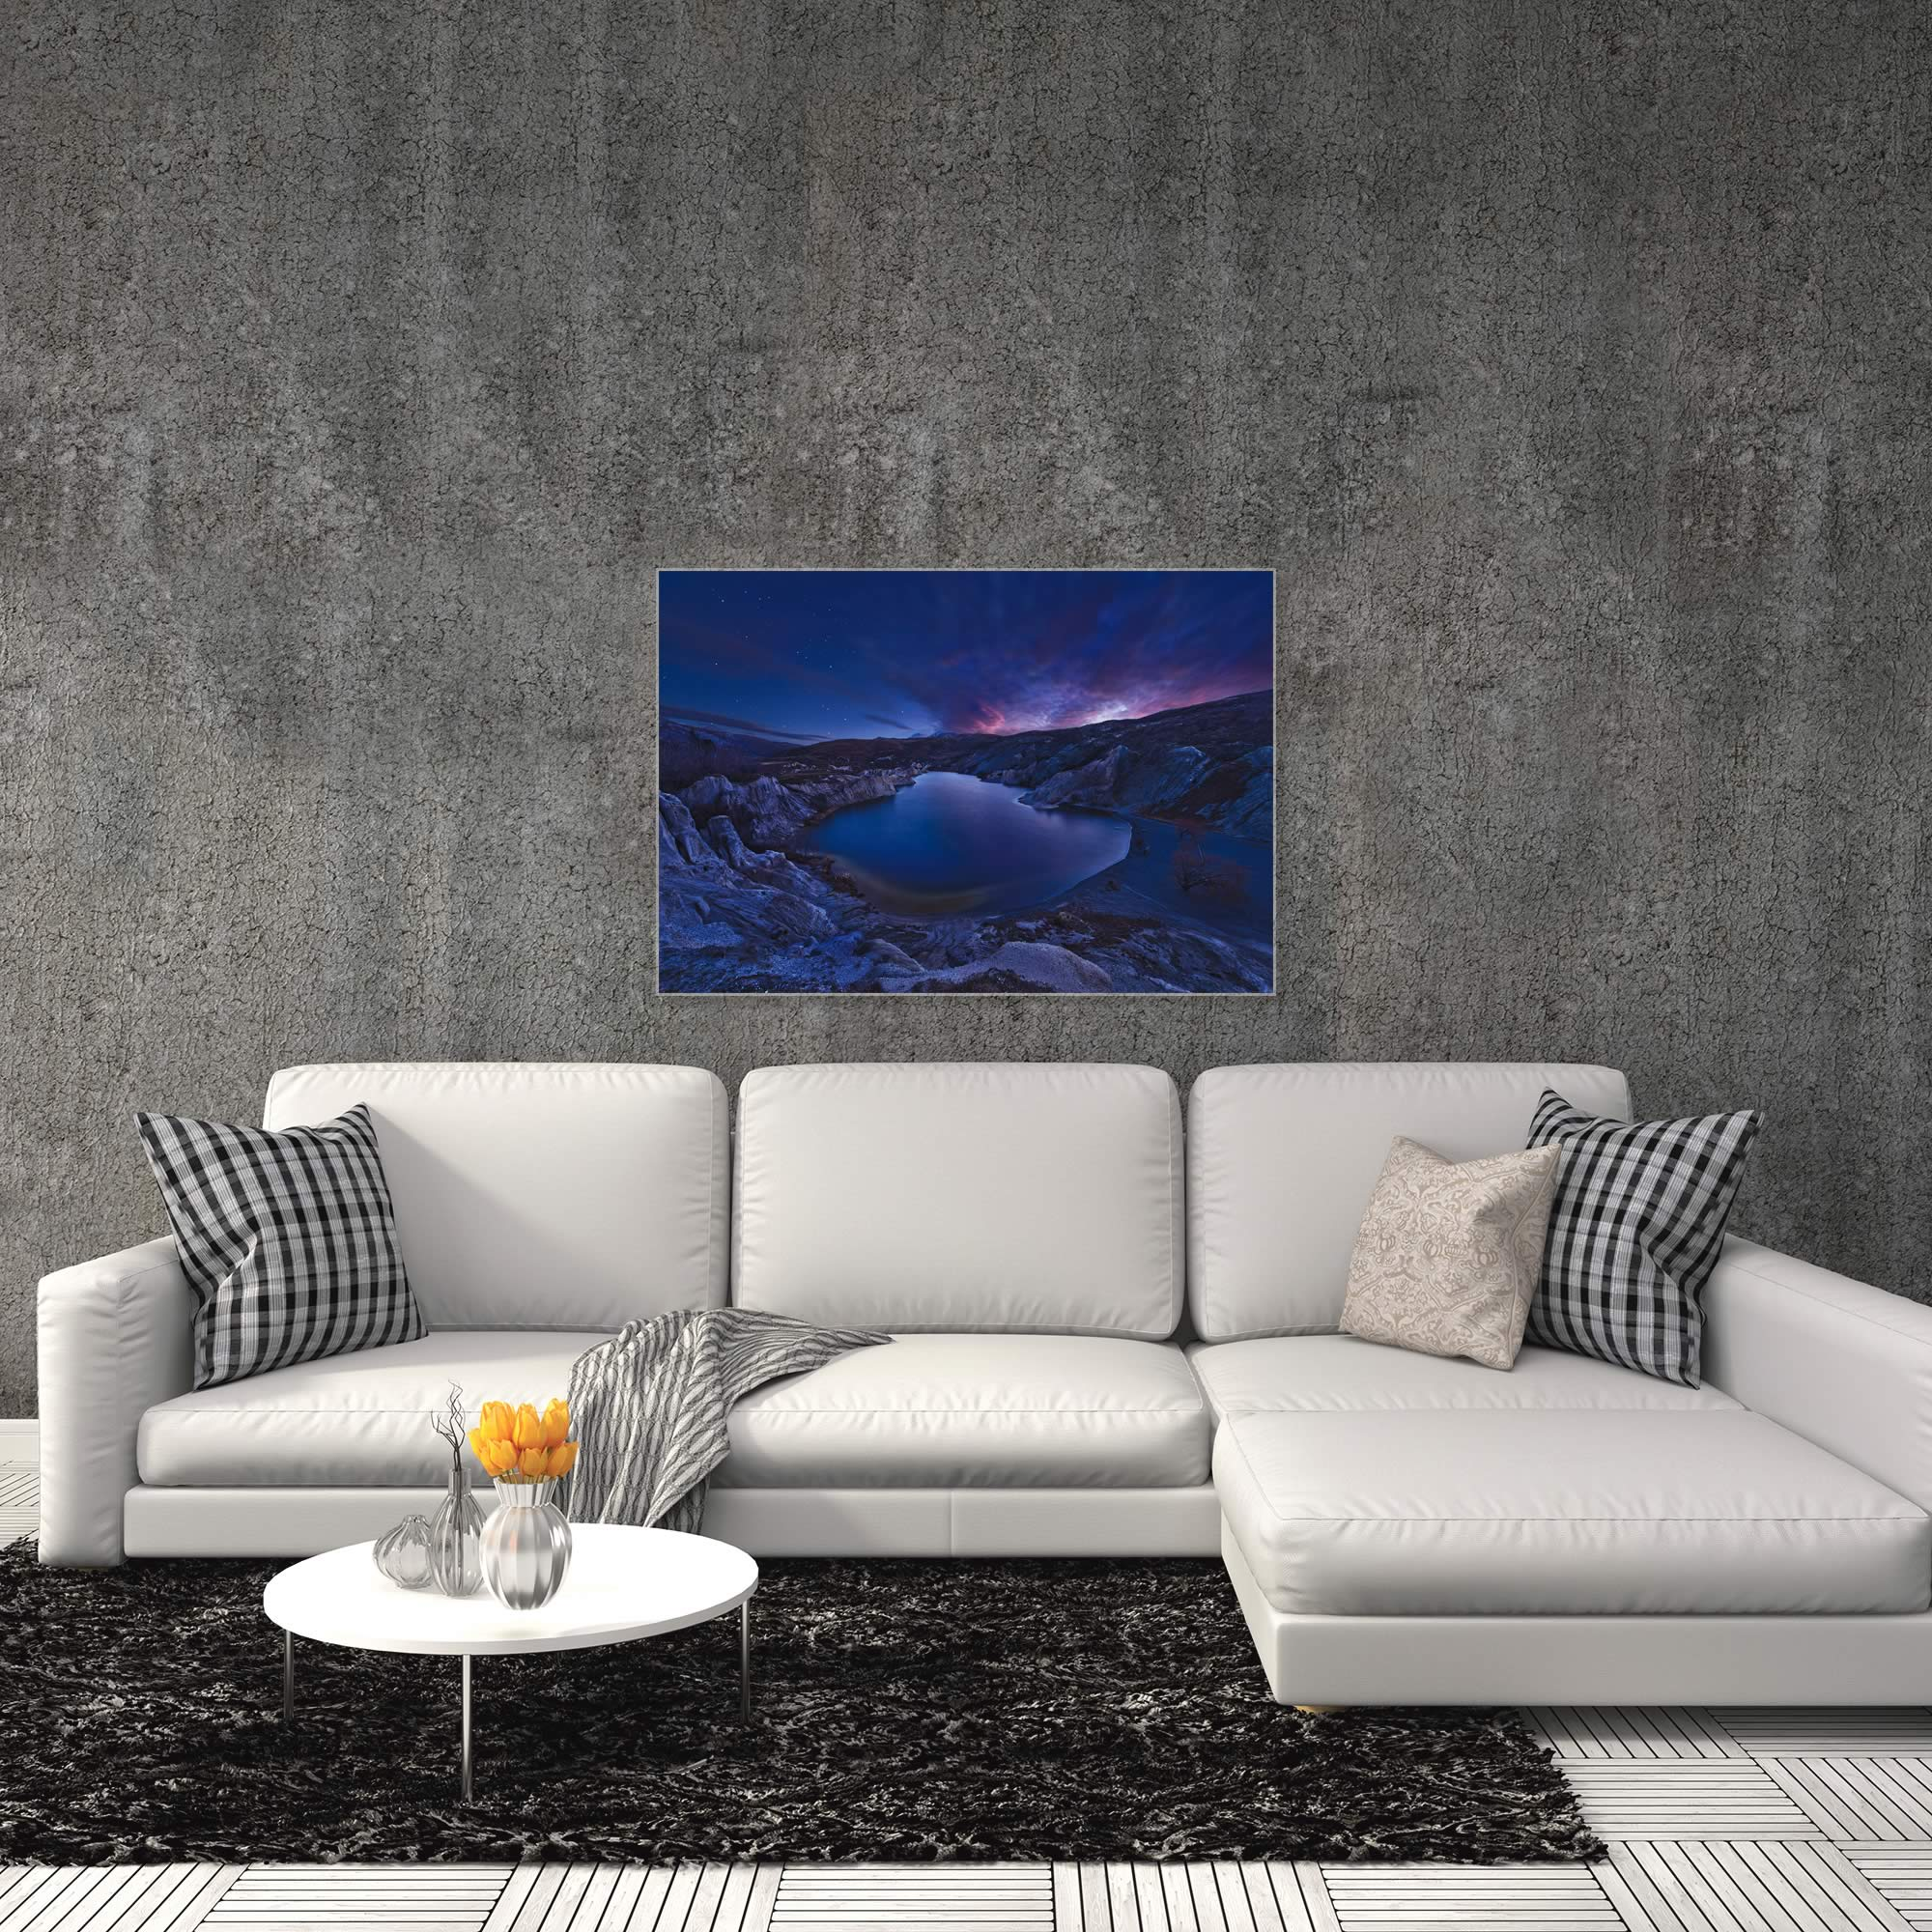 Blue Lake by Yan Zhang - Water Art on Metal or Acrylic - Alternate View 3